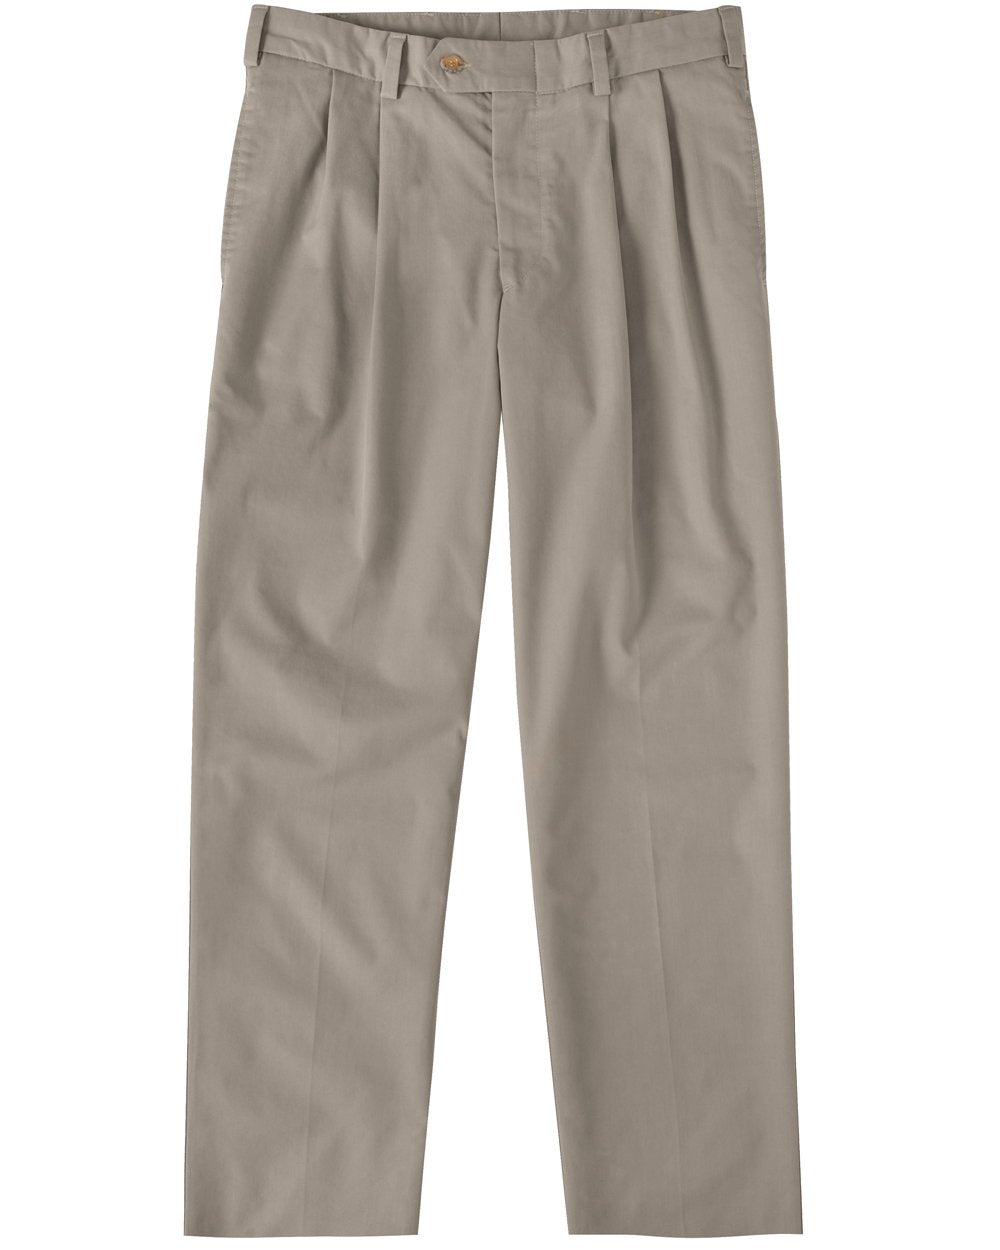 Bill's Khakis Original Twill Pleated Pants